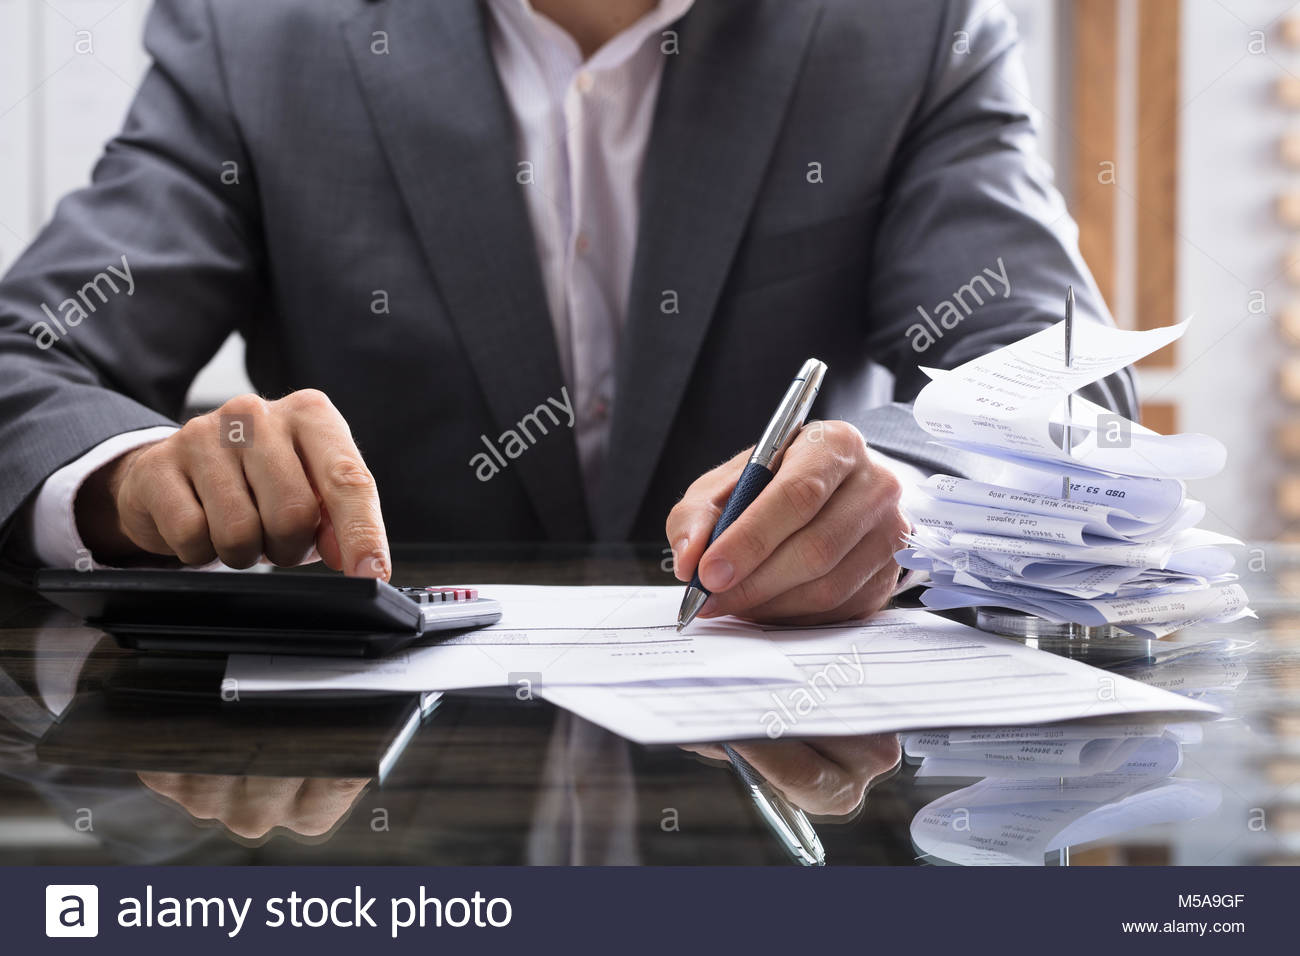 Businessperson's Hand Calculating Invoice With Calculator On Desk